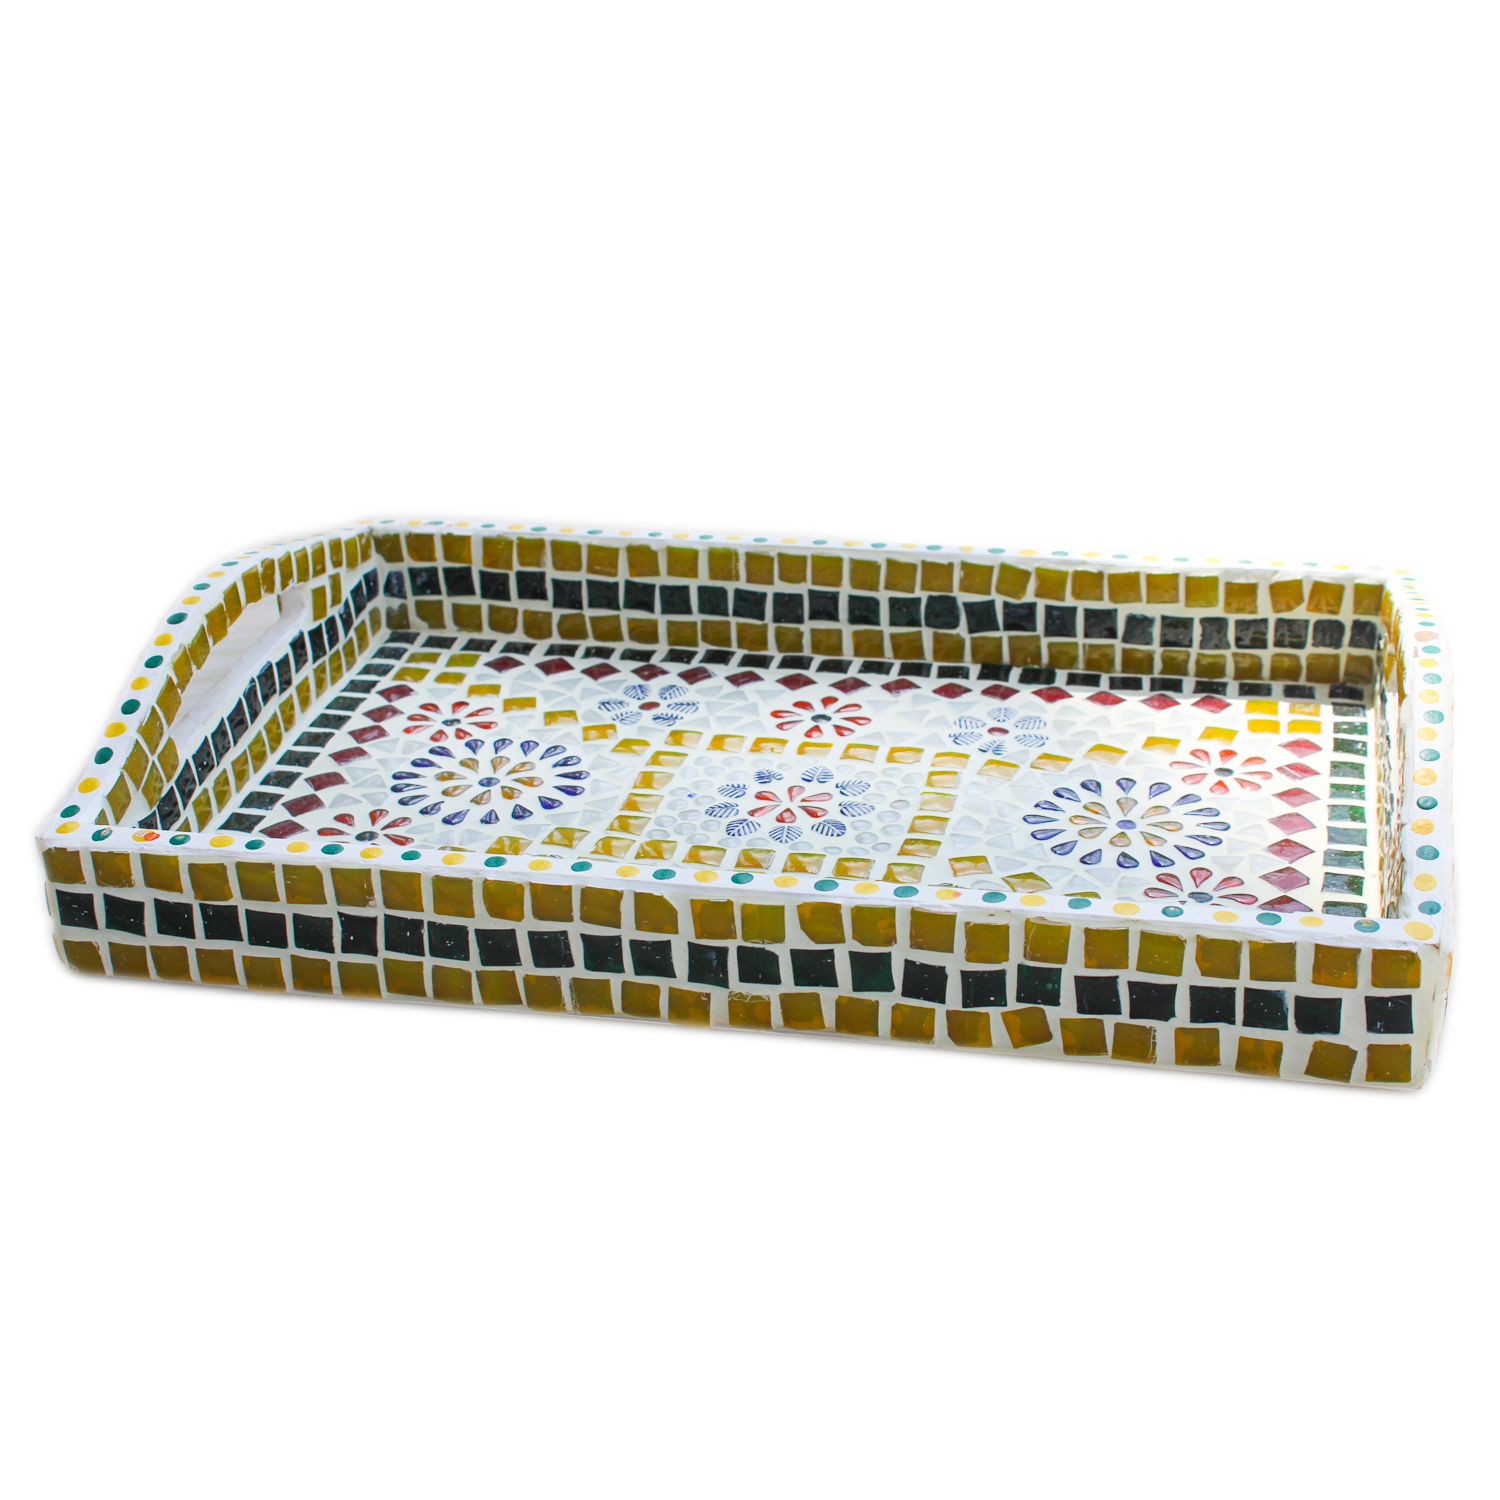 Ihandikart Handicrafts Hand Crafted Decorative Mosaic Mdf Wooden Serving Tray Size 14x9 Inch For Office Home And Table Decor Ihandikart Com